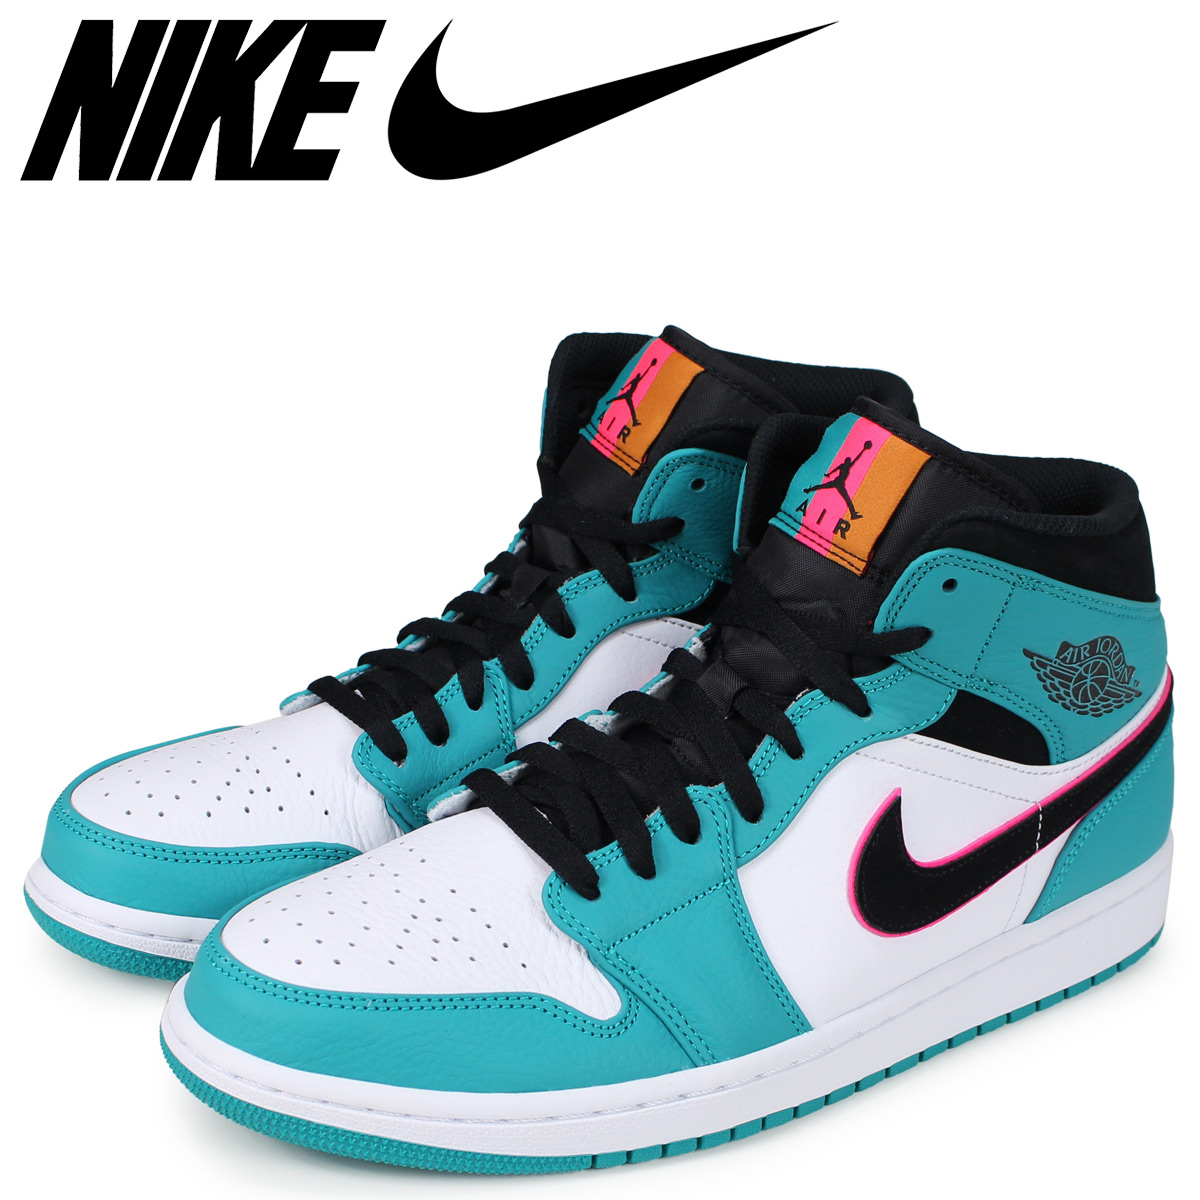 new product 7ddb5 f7a7f  brand NIKE getting high popularity from sneakers freak . A mid cut model  appears from AIR JORDAN 1 ...